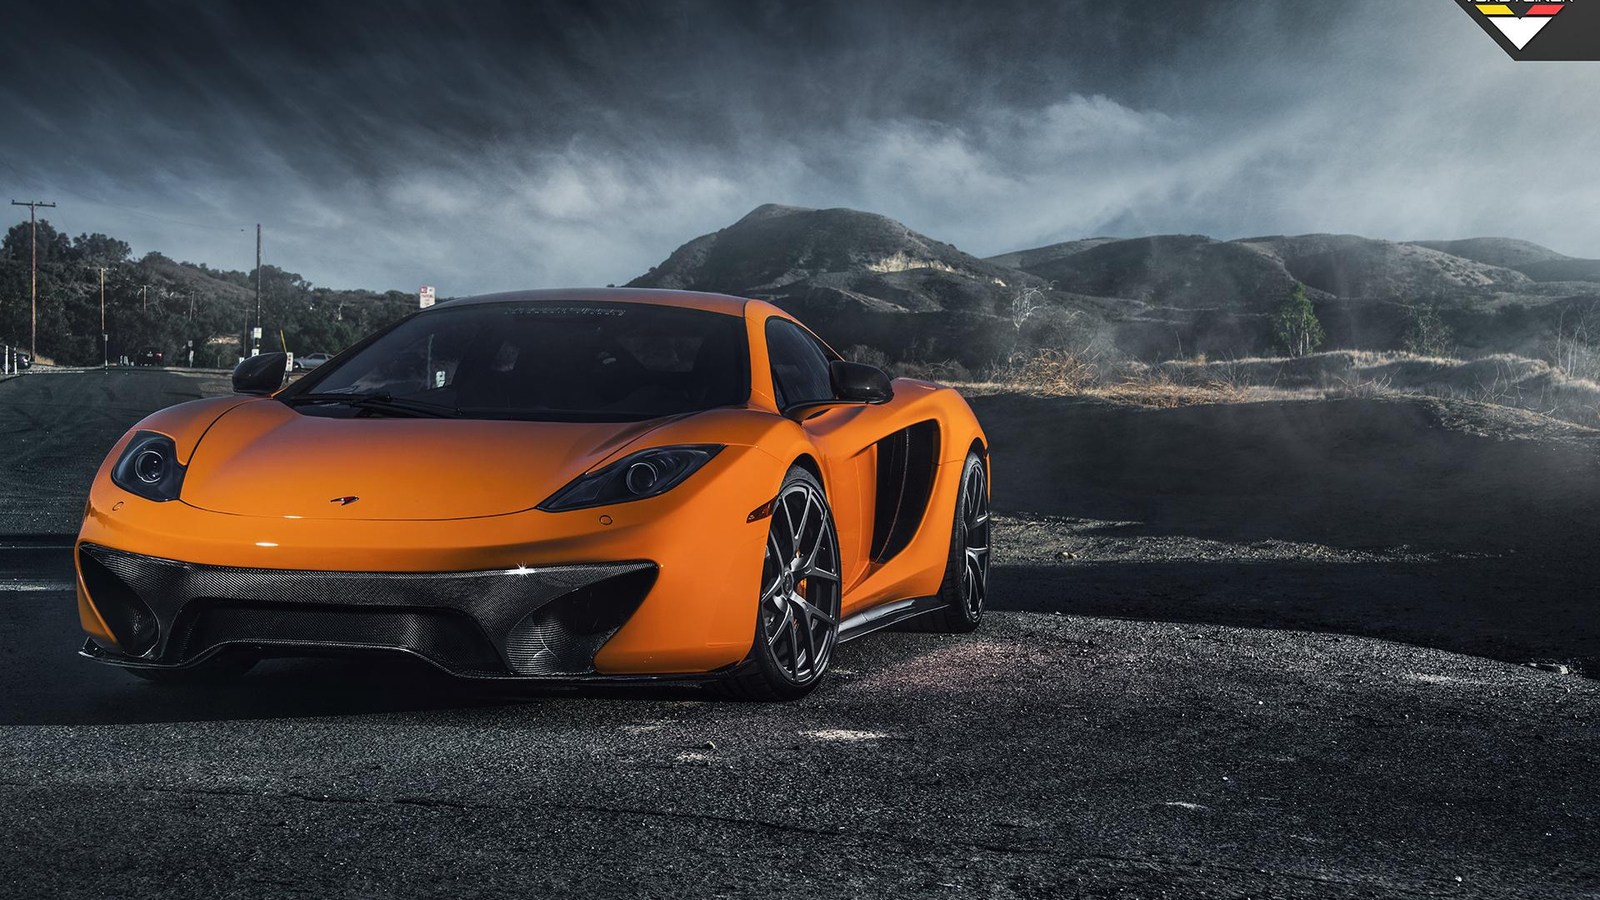 McLaren supercar wallpaper download 49730